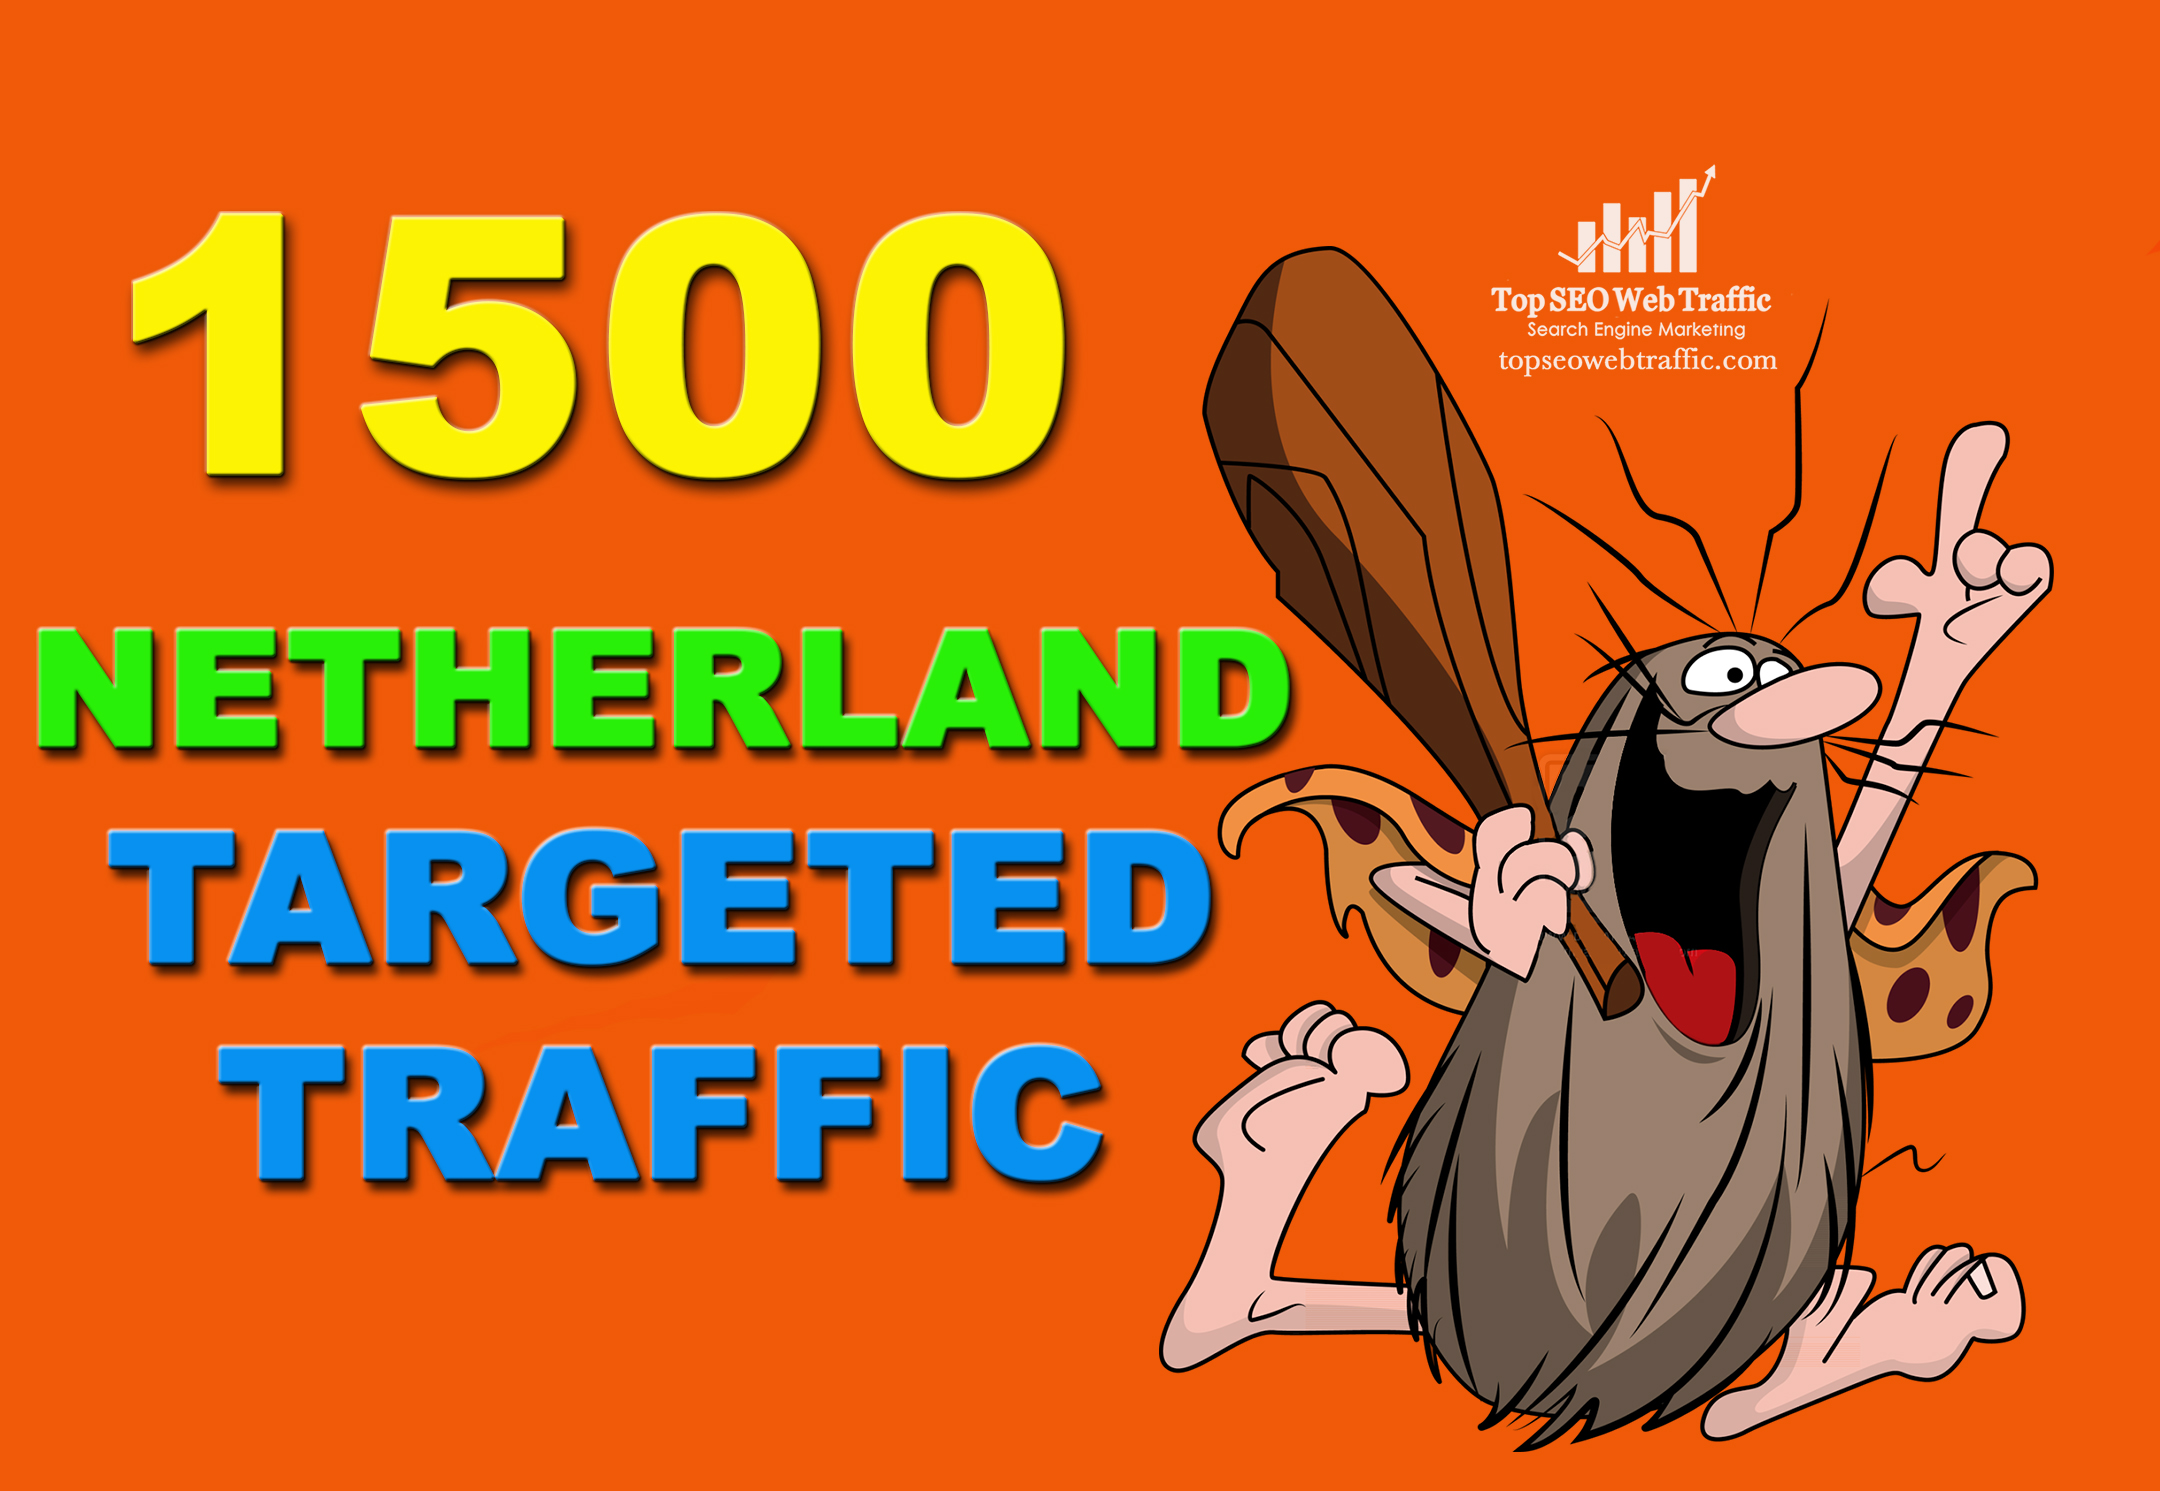 I WILL SEND 1,500 NETHERLANDS WEB TRAFFIC VISITORS FOR 3 DAYS